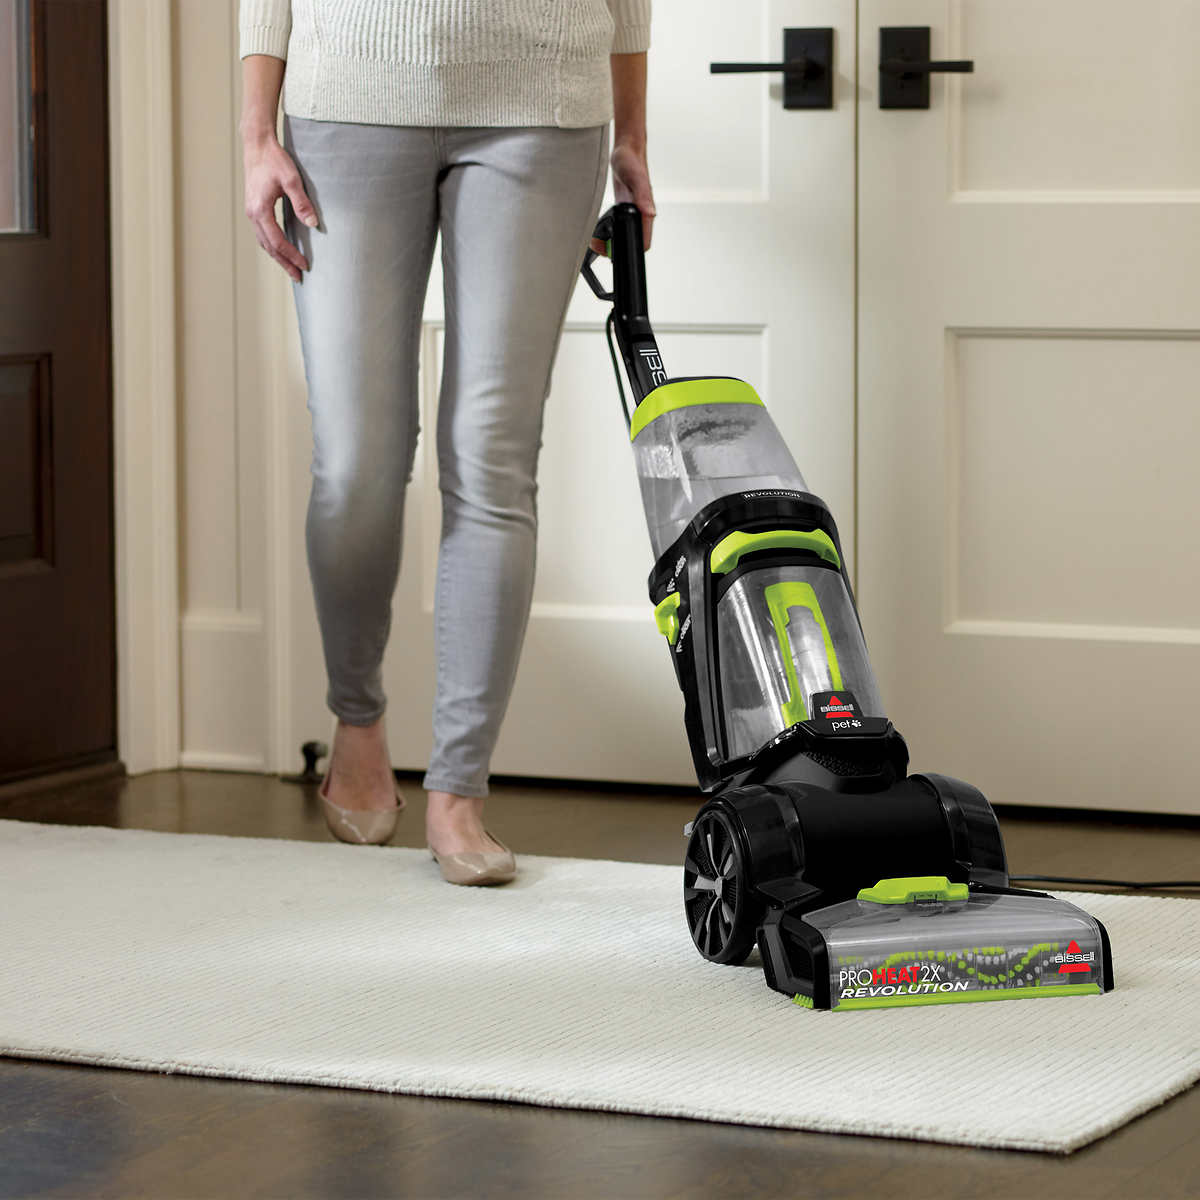 Natural Options For Steam Vacuums To Clean Carpets A Little Dirt Is Good You